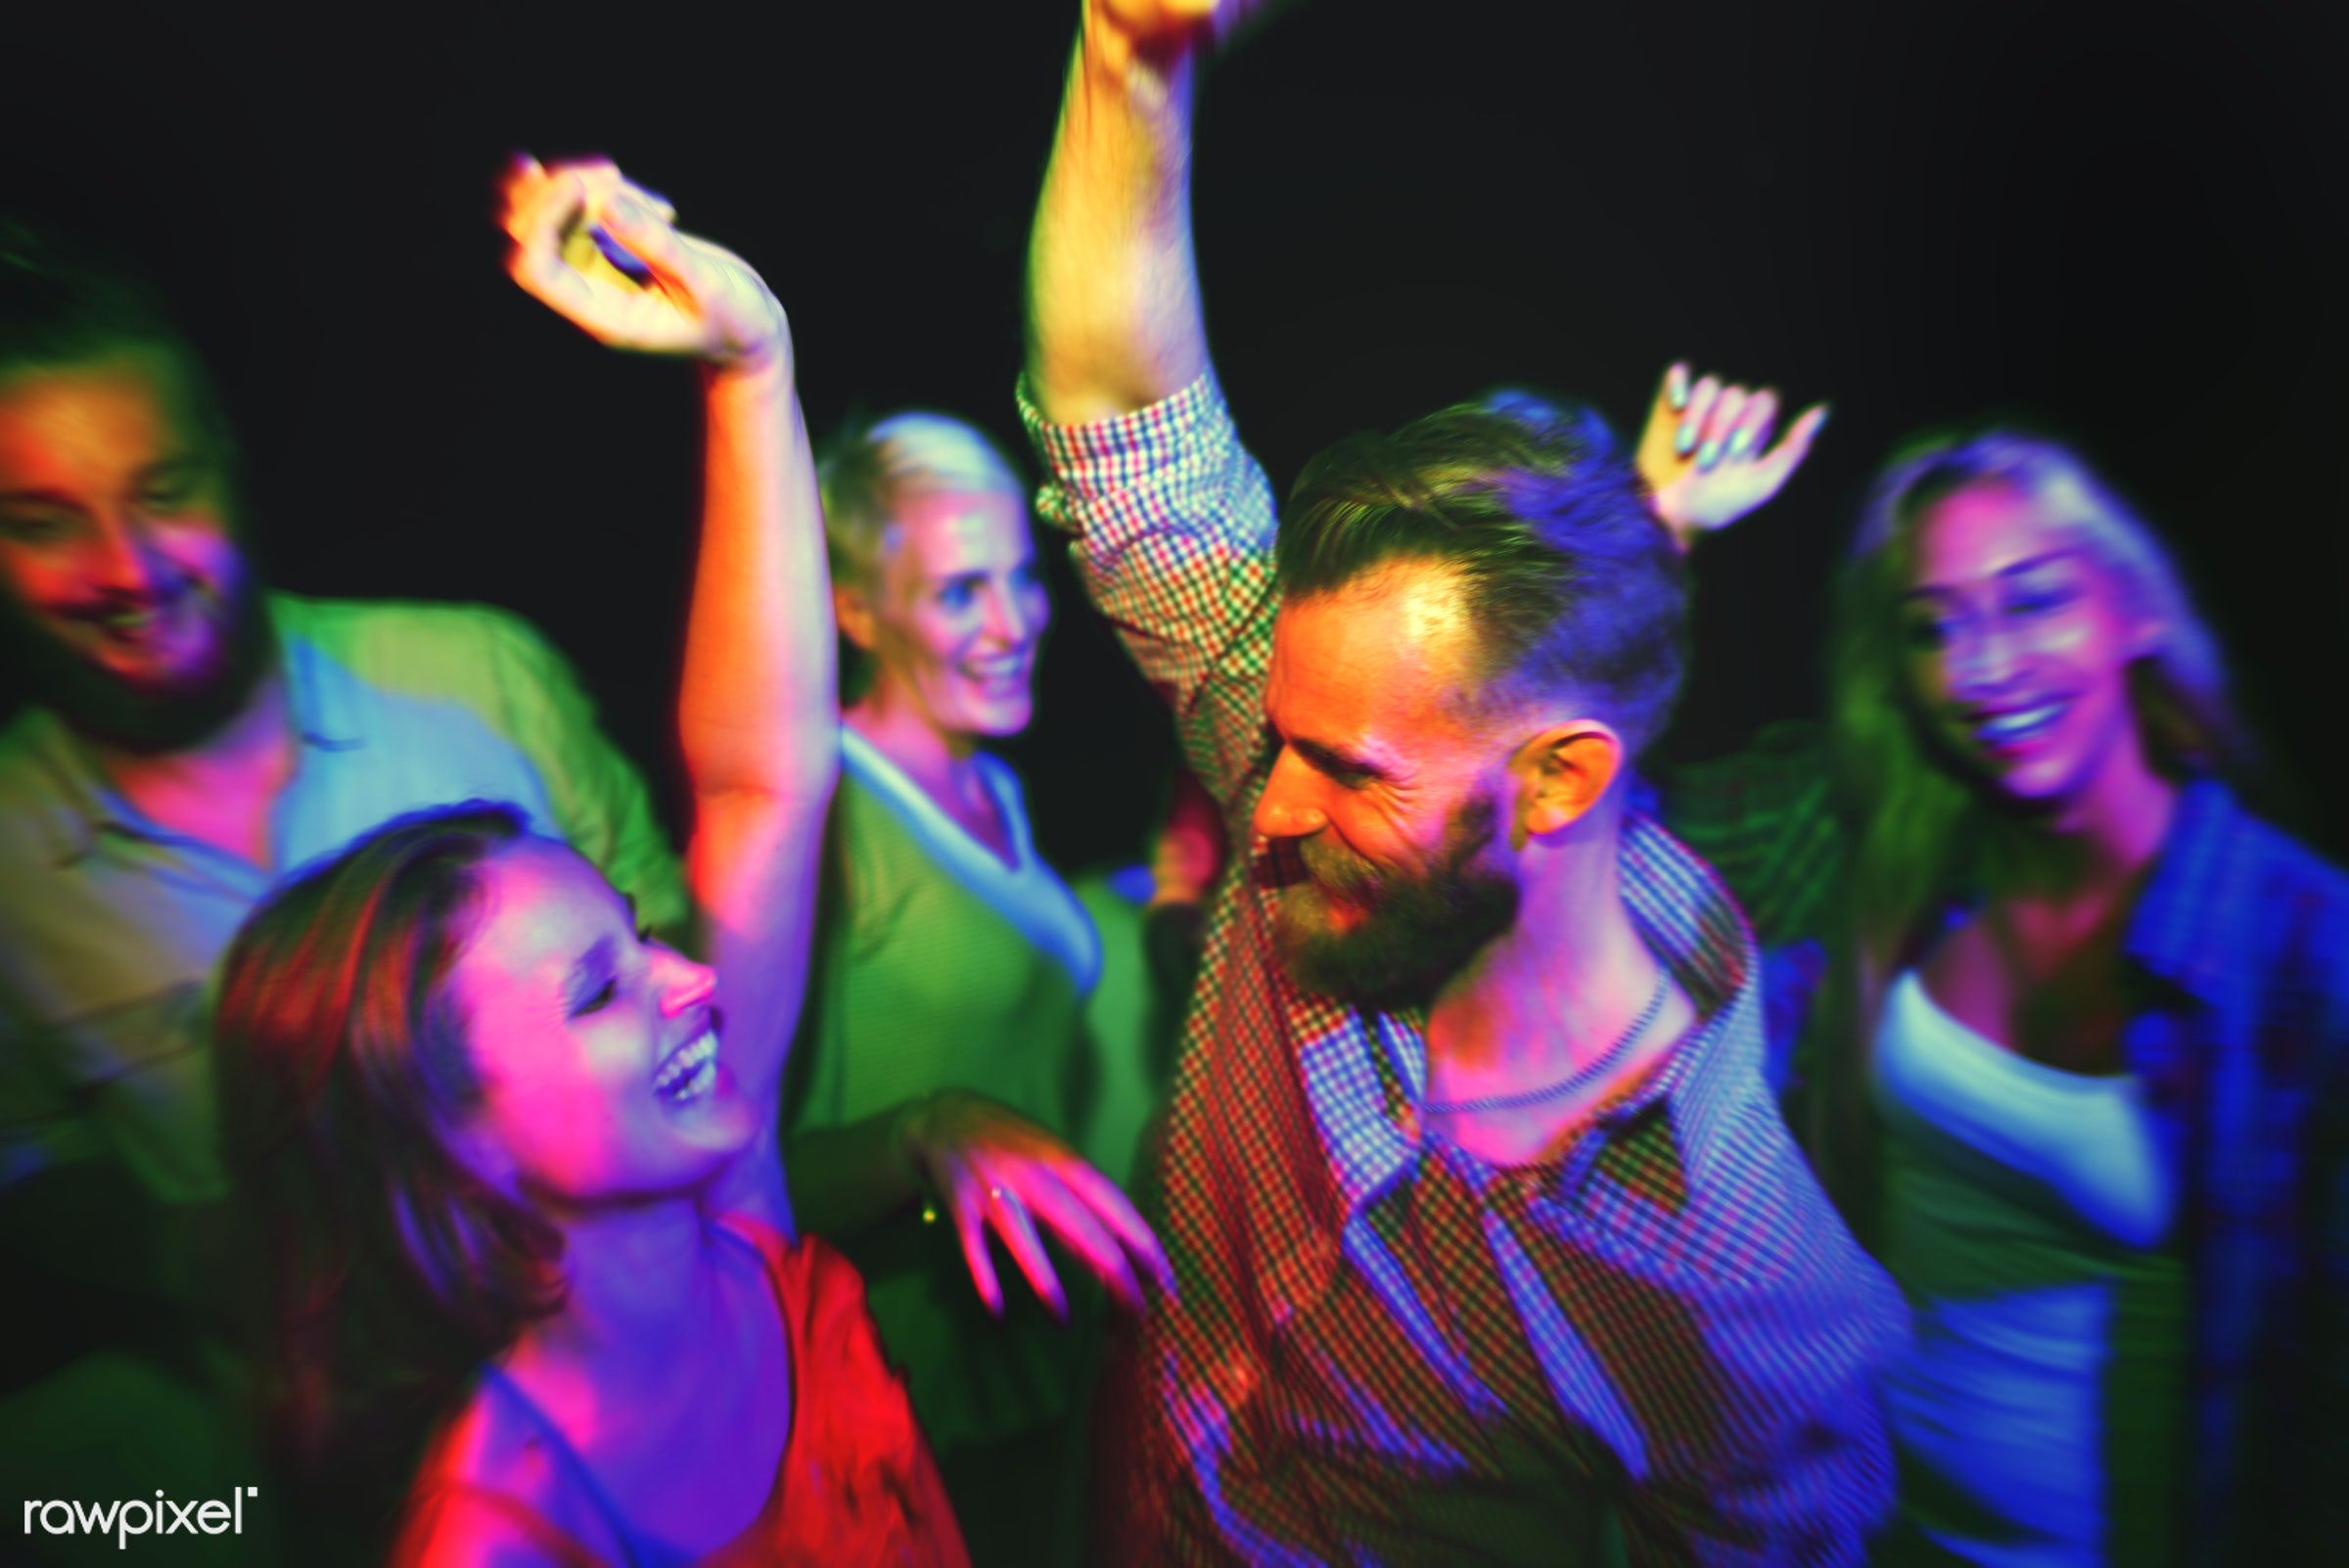 Friends dancing at a summer party - music, event, dance, party, night, clubbing, bonding, casual, celebration, cheerful,...